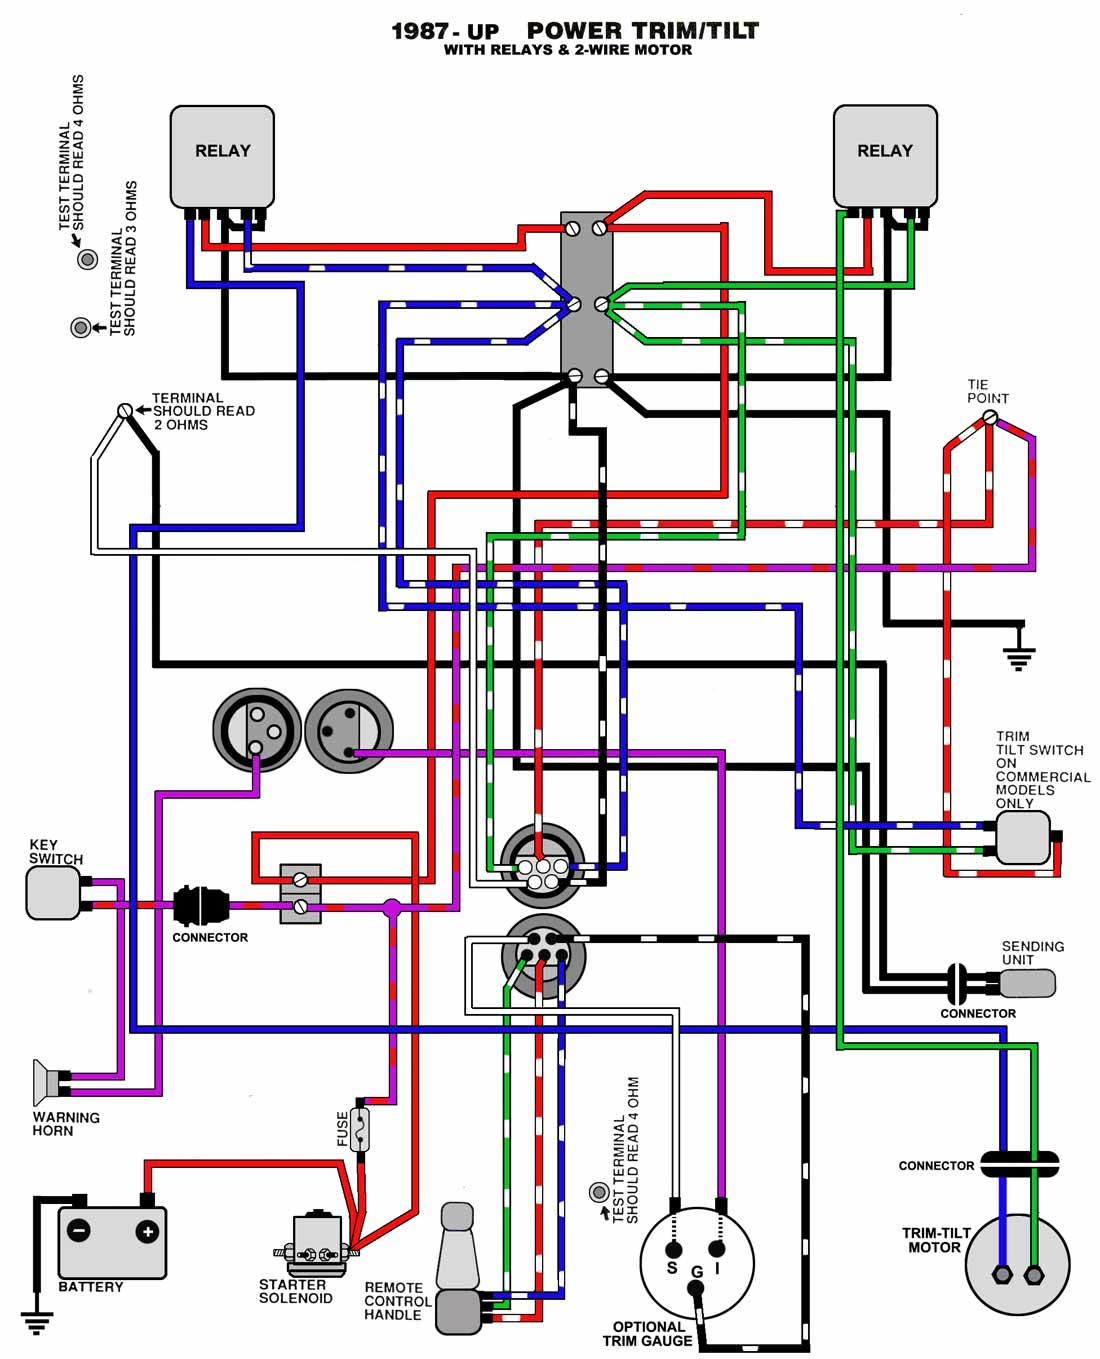 TnT_87_UP mastertech marine evinrude johnson outboard wiring diagrams  at crackthecode.co